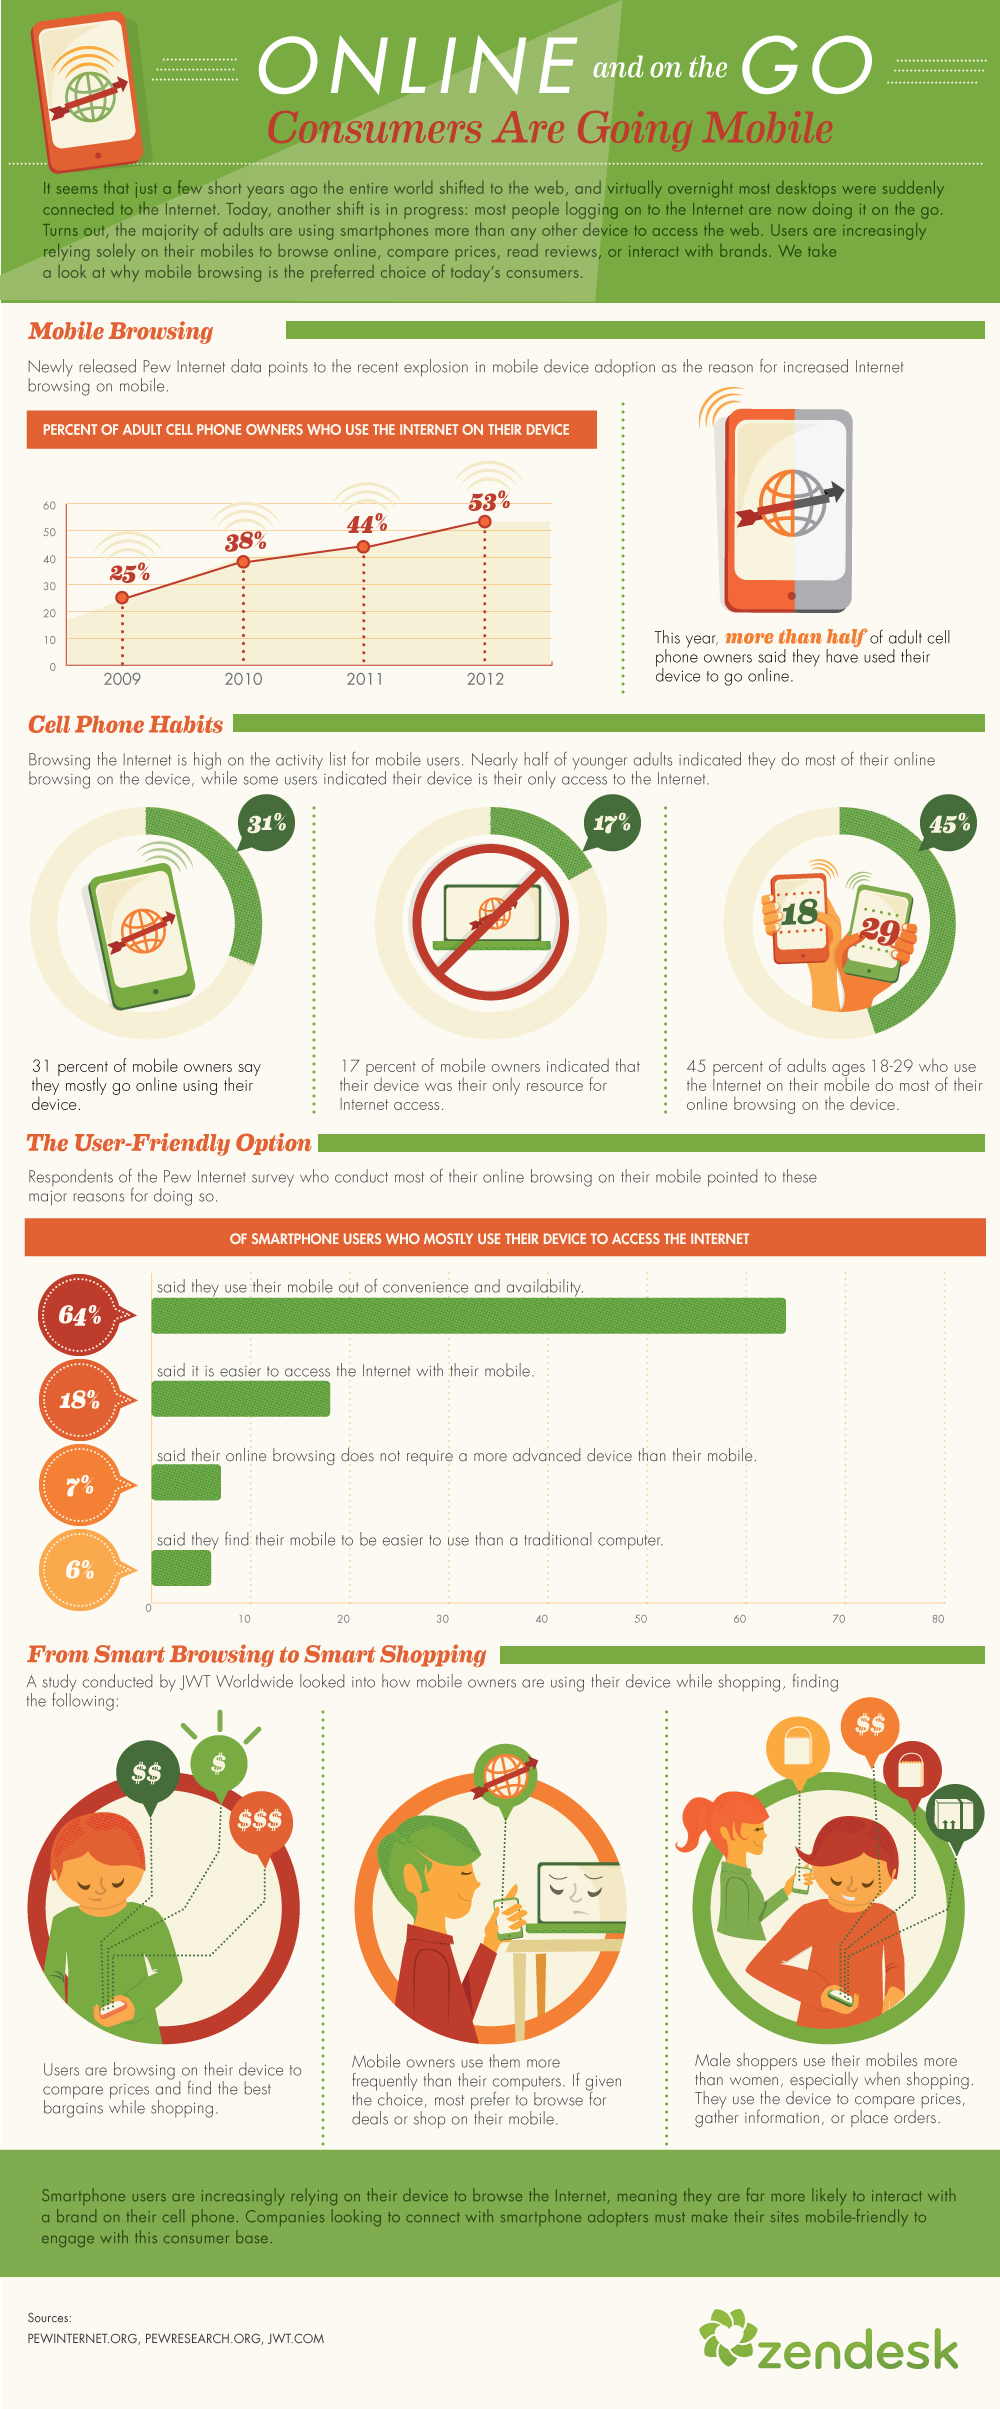 Consumers are going mobile